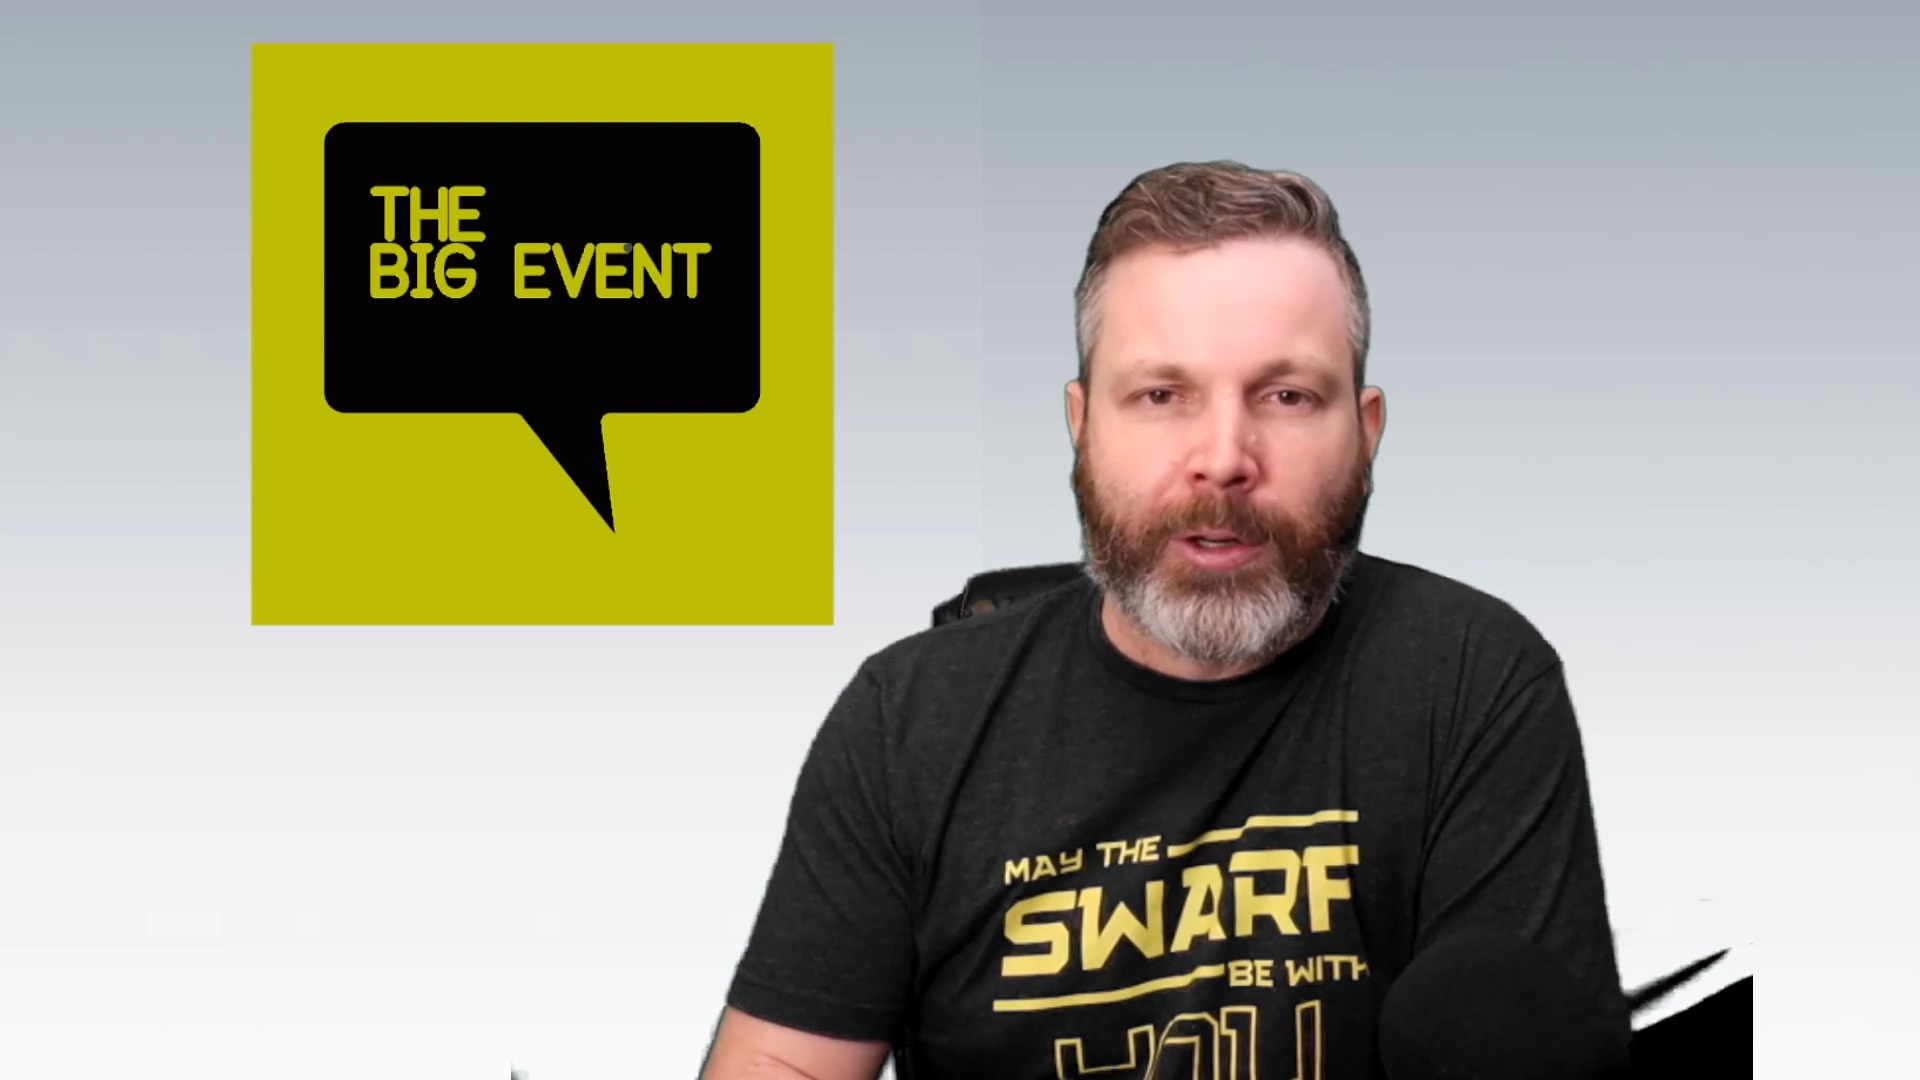 The Big Event Promo-Mike Wearne-caminstructor